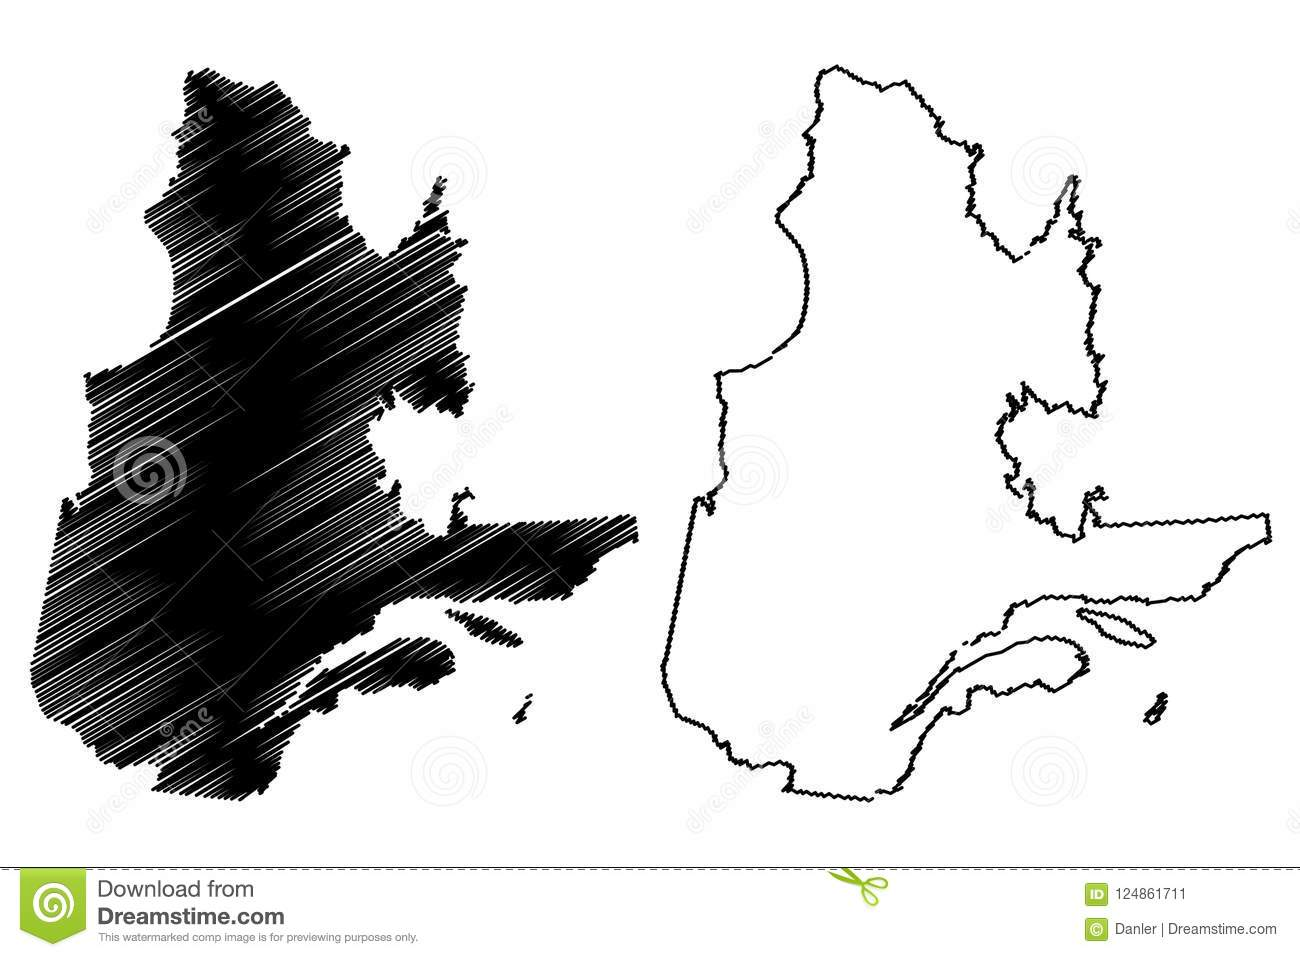 Quebec On Map Of Canada.Quebec Canada Map Vector Stock Vector Illustration Of Isolated